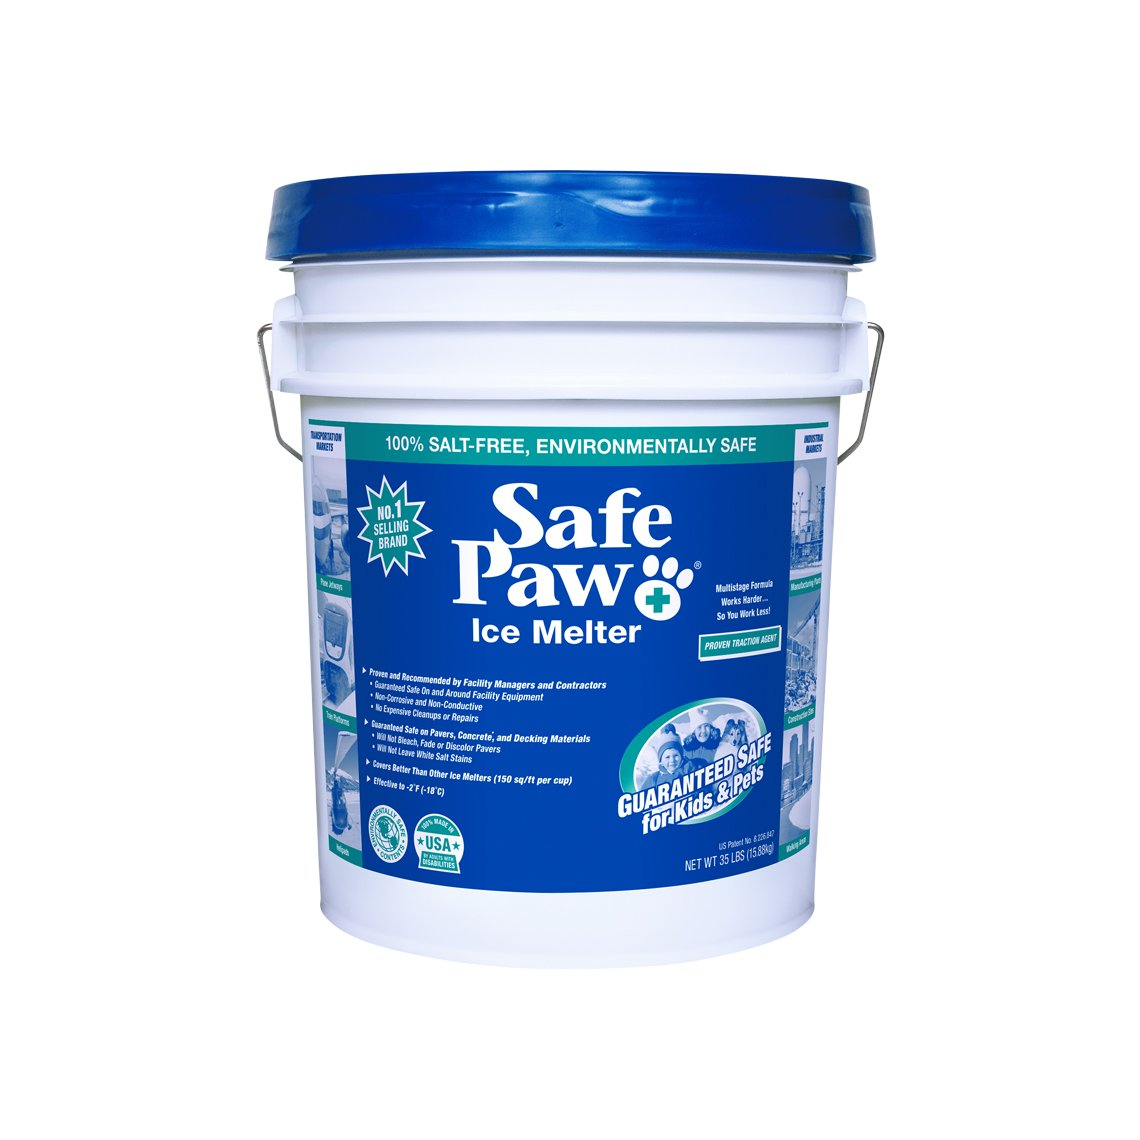 Safe Paw Non-Toxic Pet and Child Safe Ice Melter